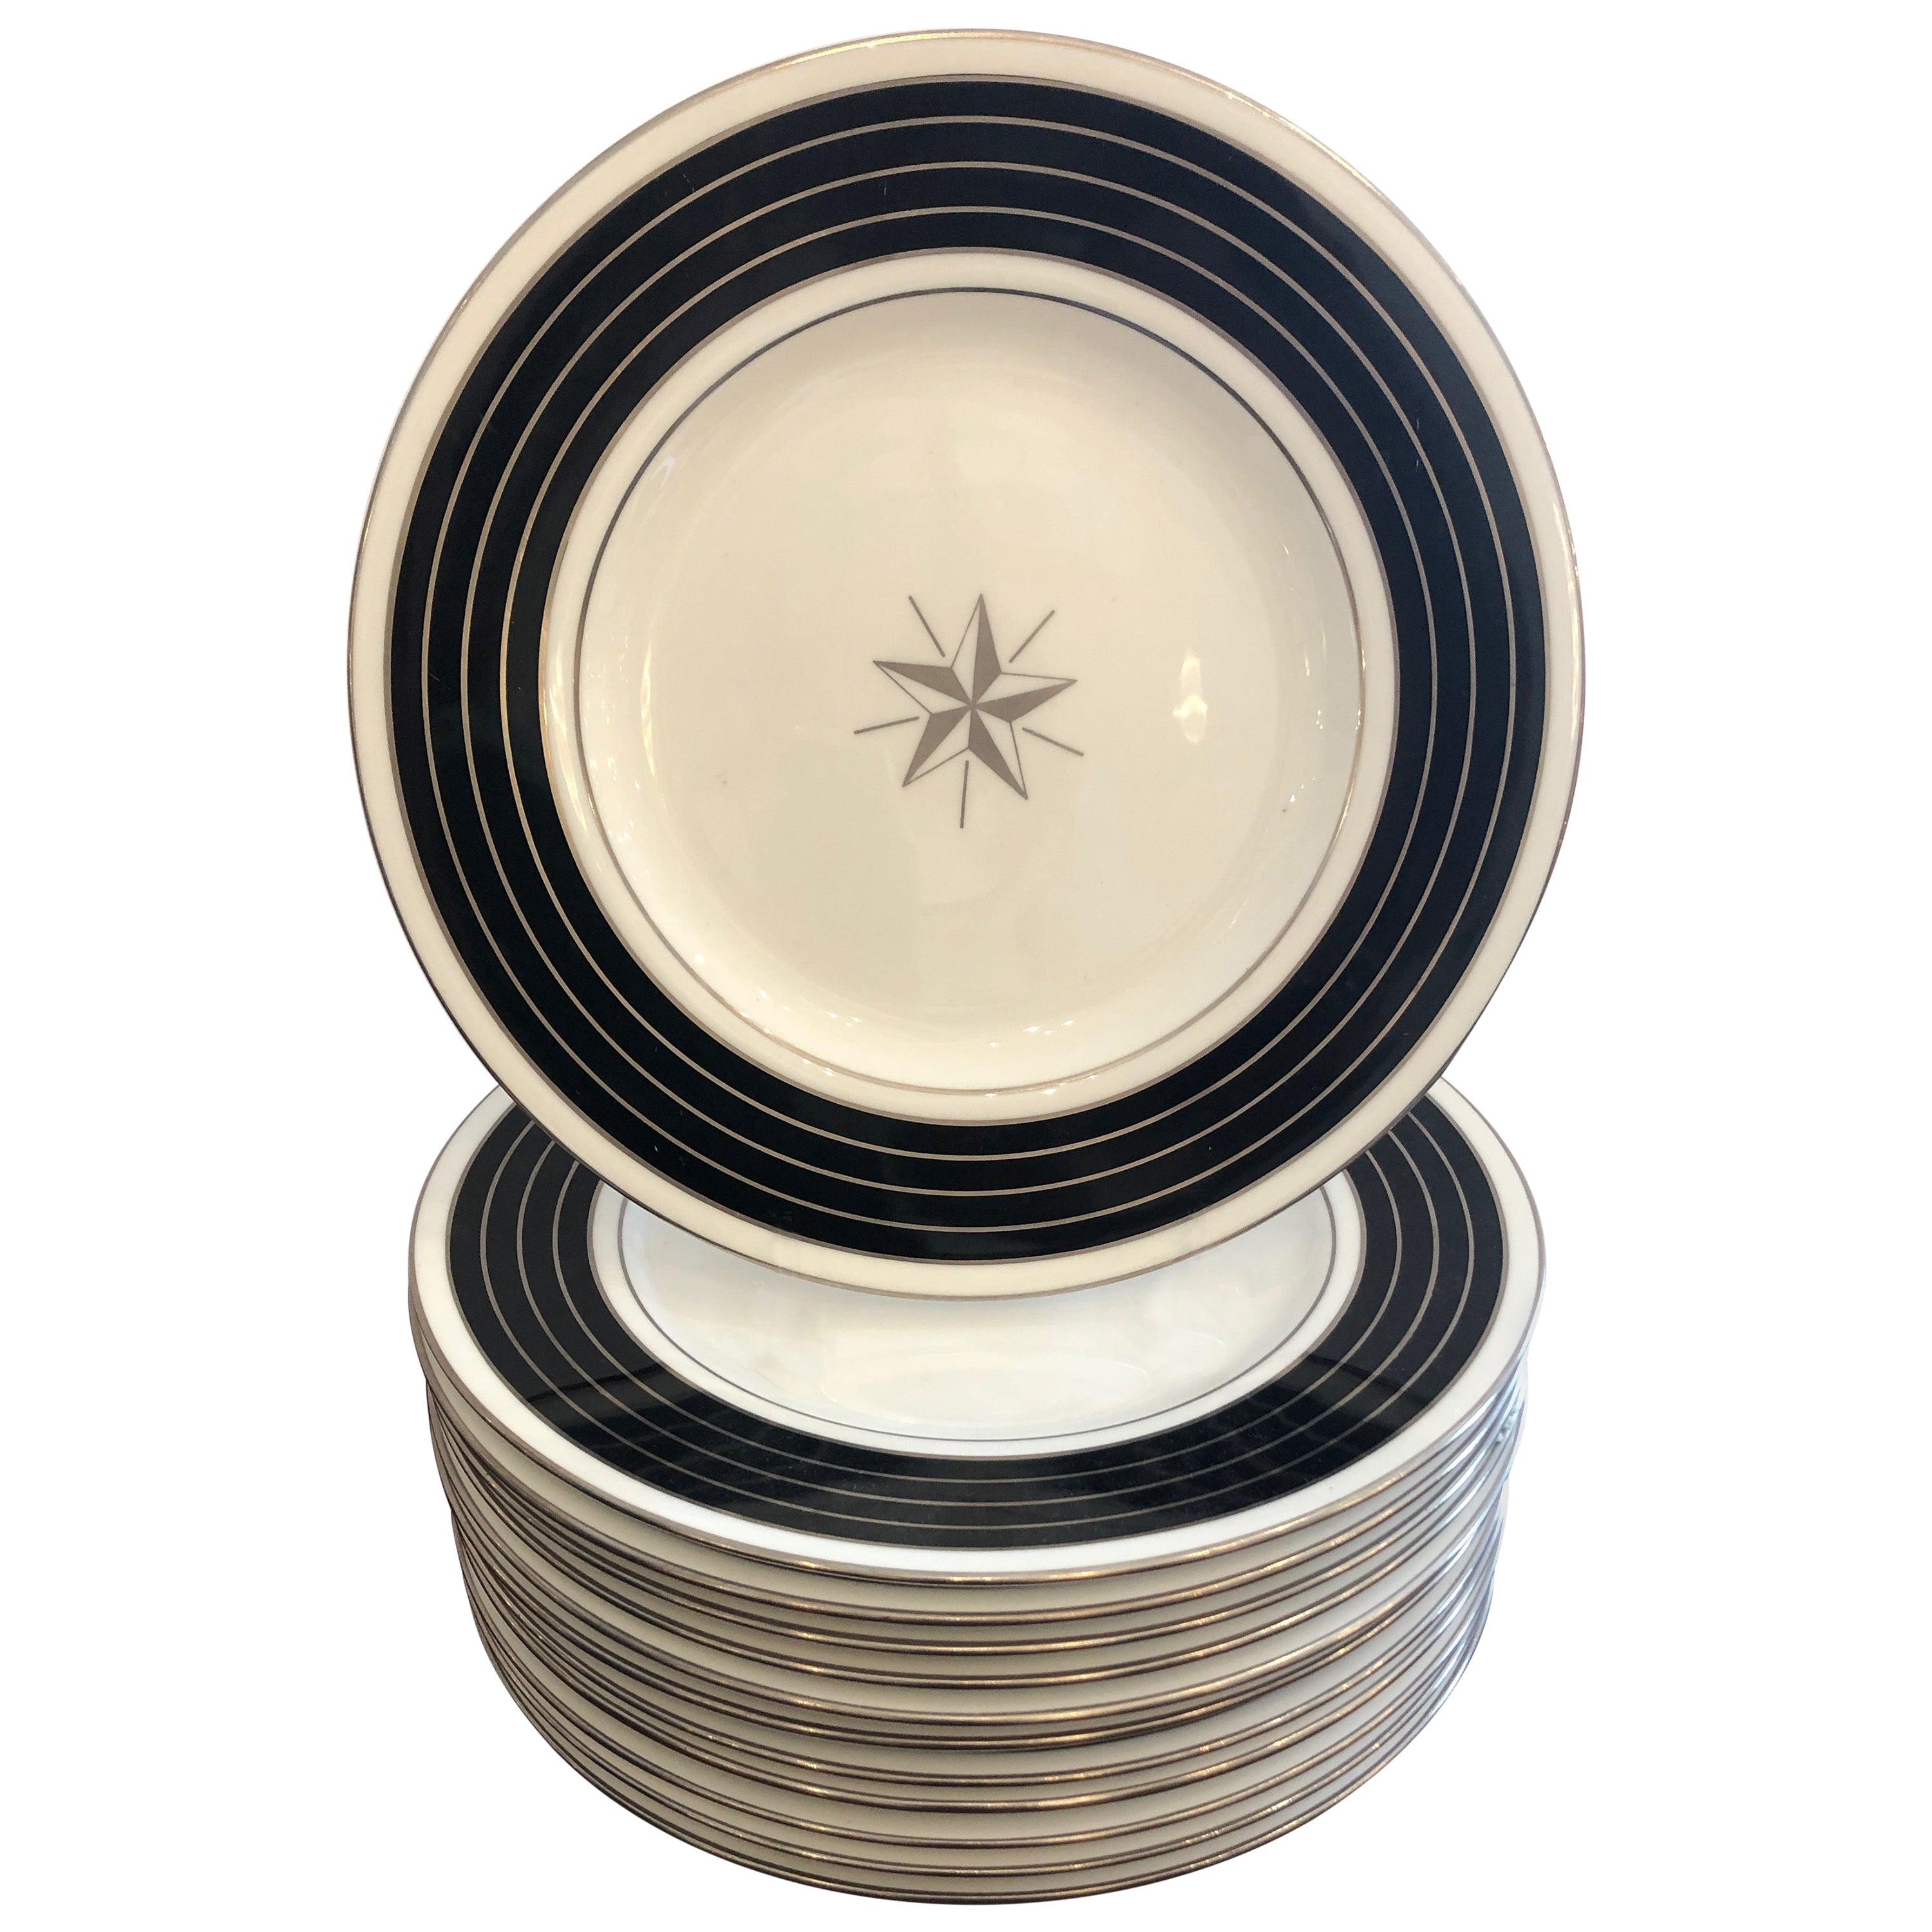 Sublime Set of 12 Minton Dinner or Service Plates